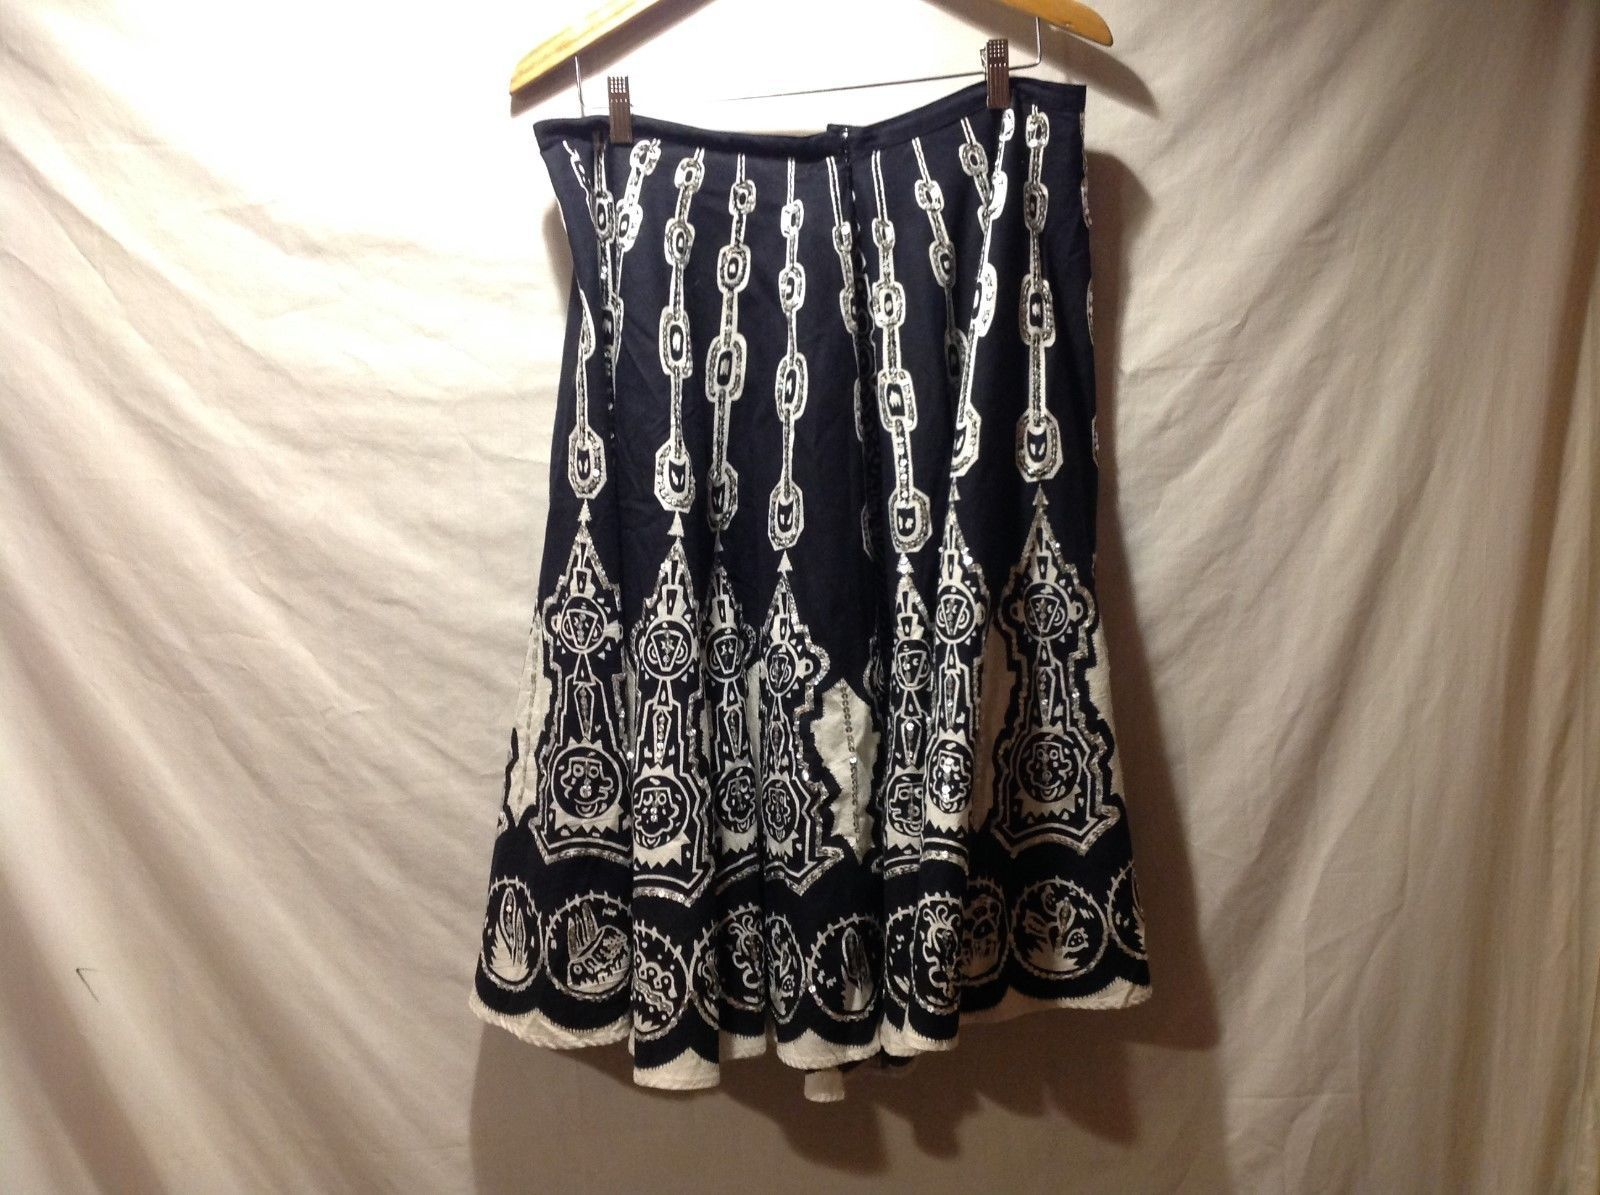 DIMRI Black/White Chain Pattern Sequined Skirt 100% Cotton Size 16